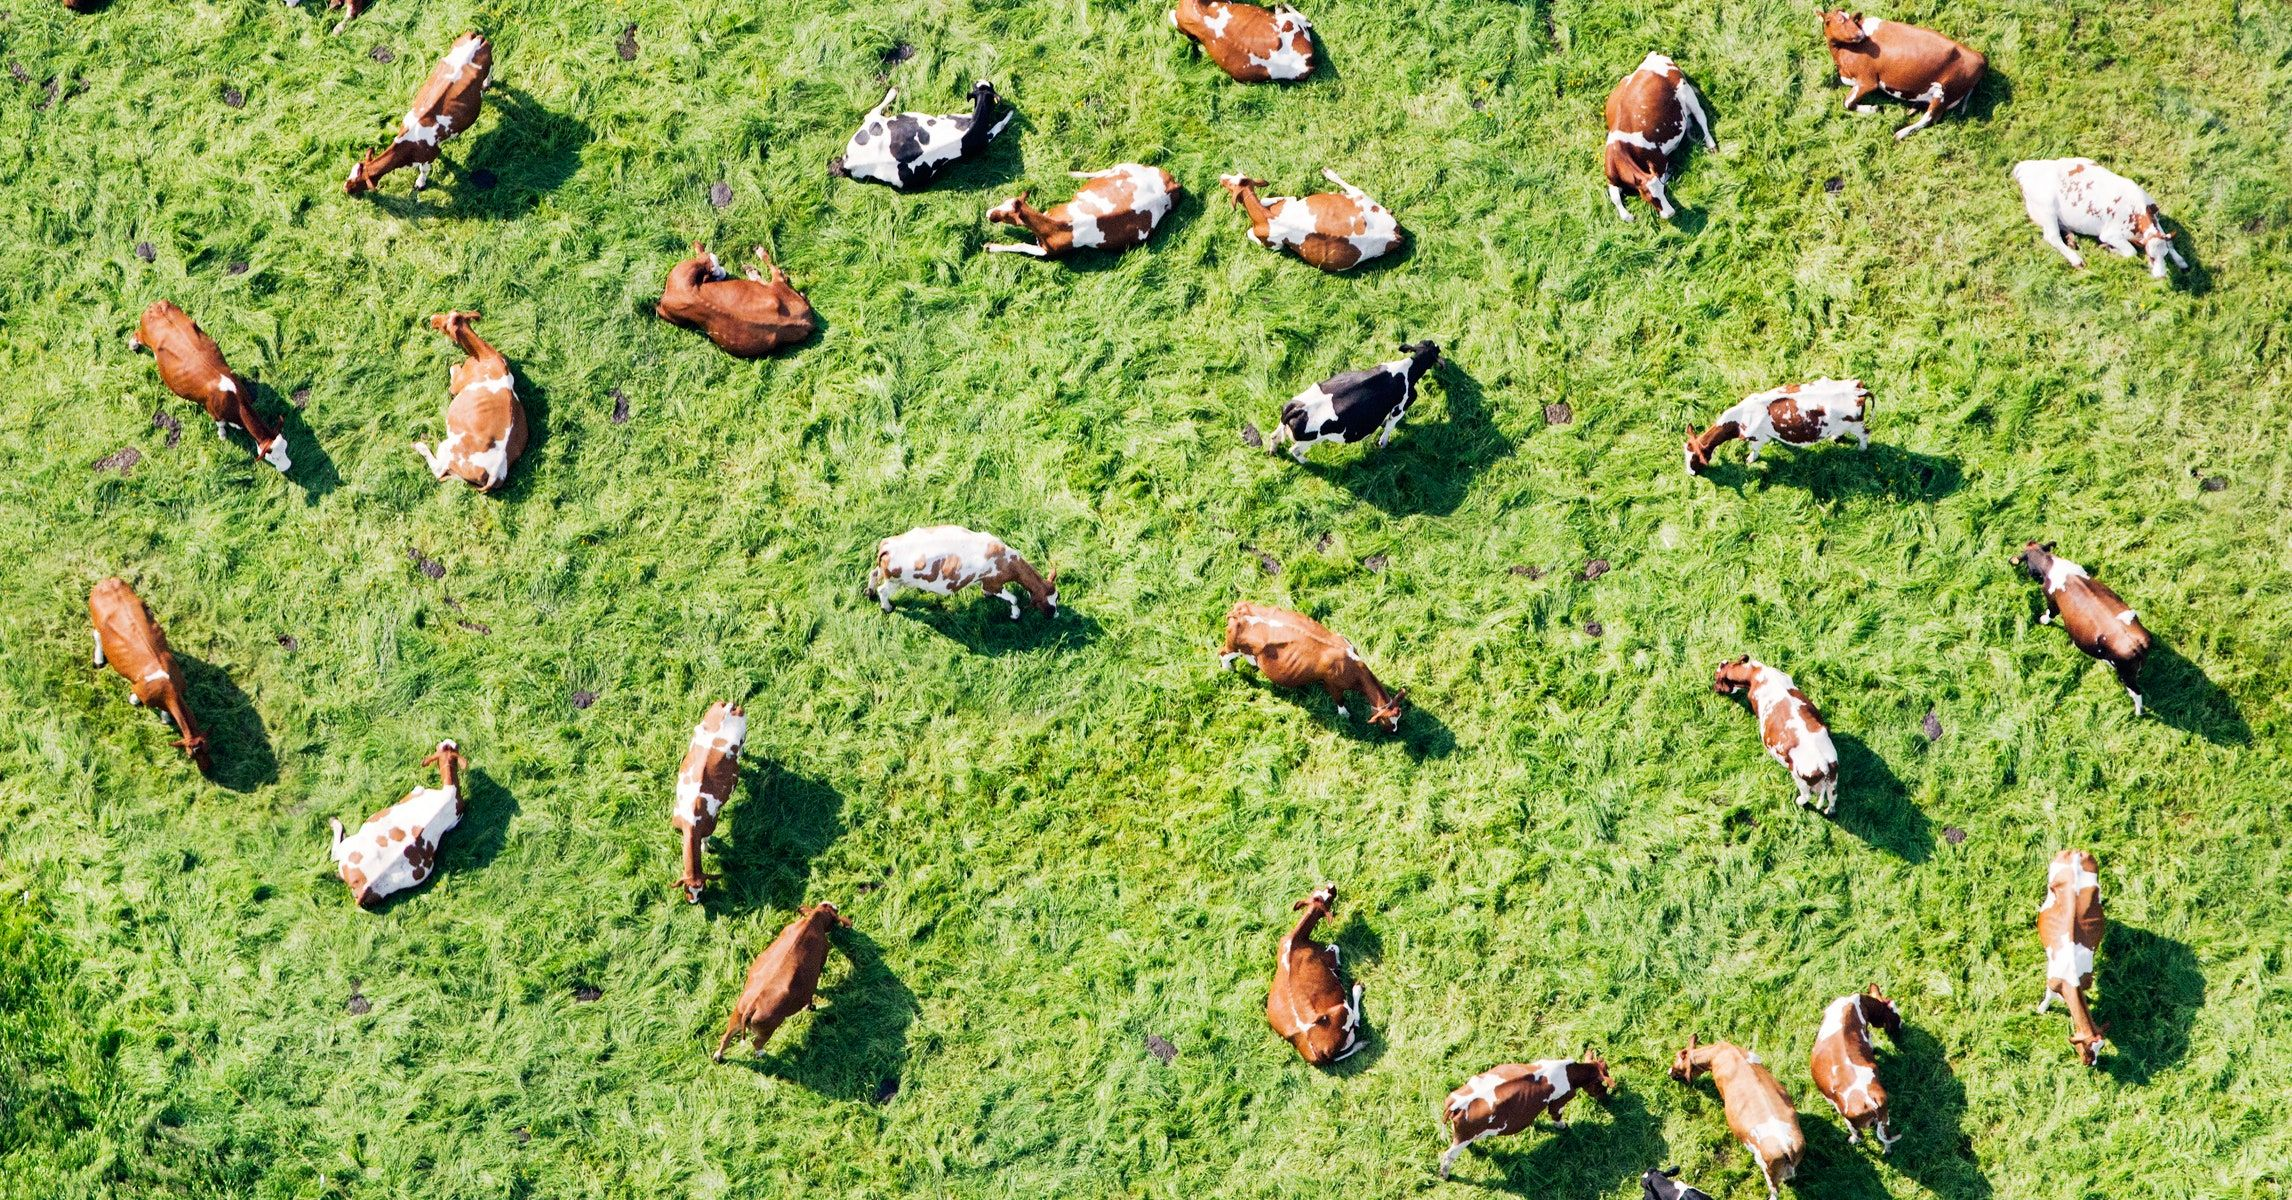 Mathematicians Decode the Surprising Complexity of Cow Herds